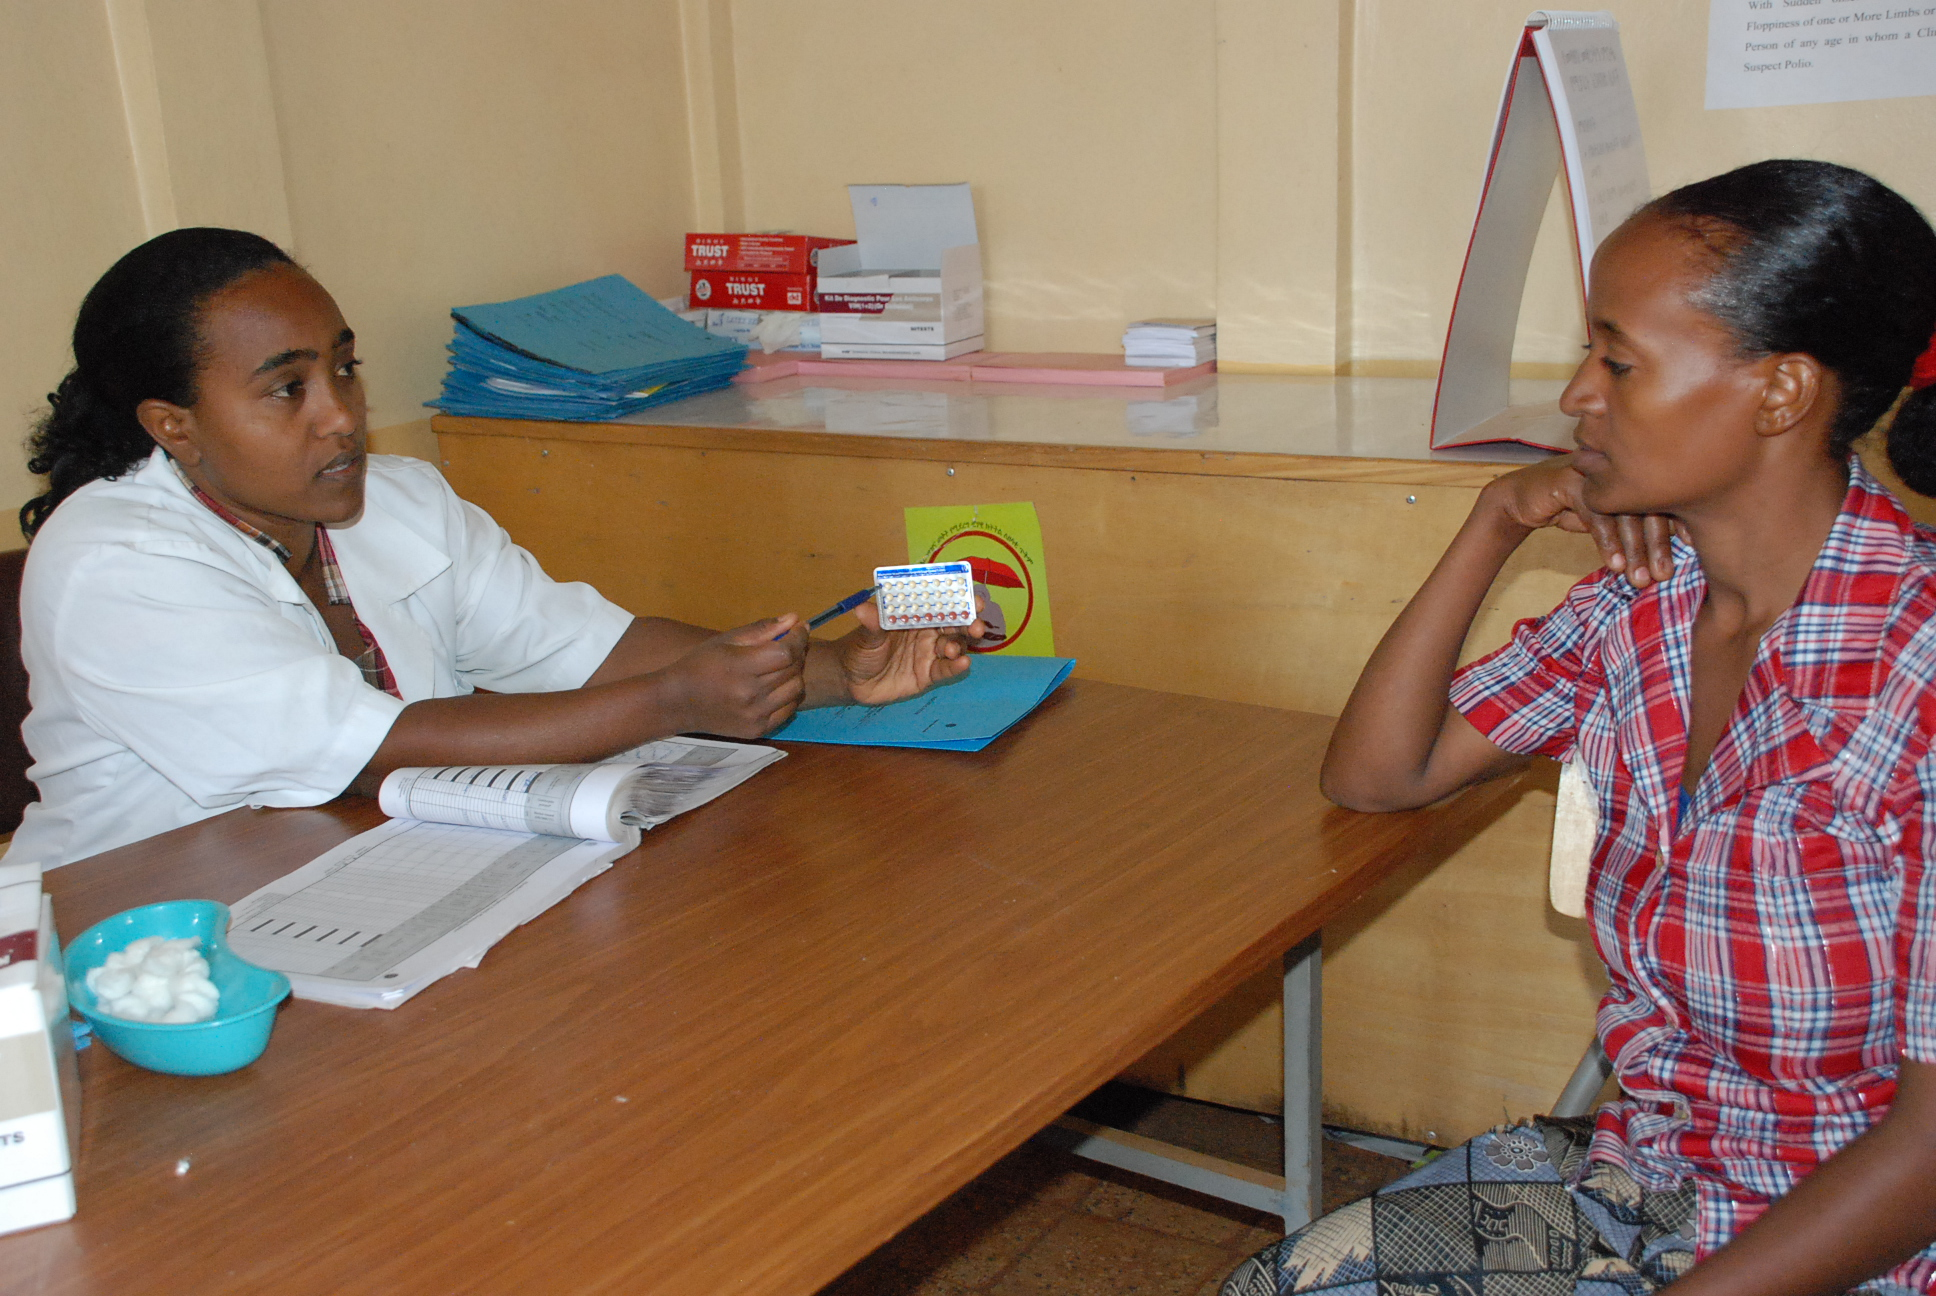 Exhibit 2. HEW counseling mother on family planning, Amhara region, Ethiopia.